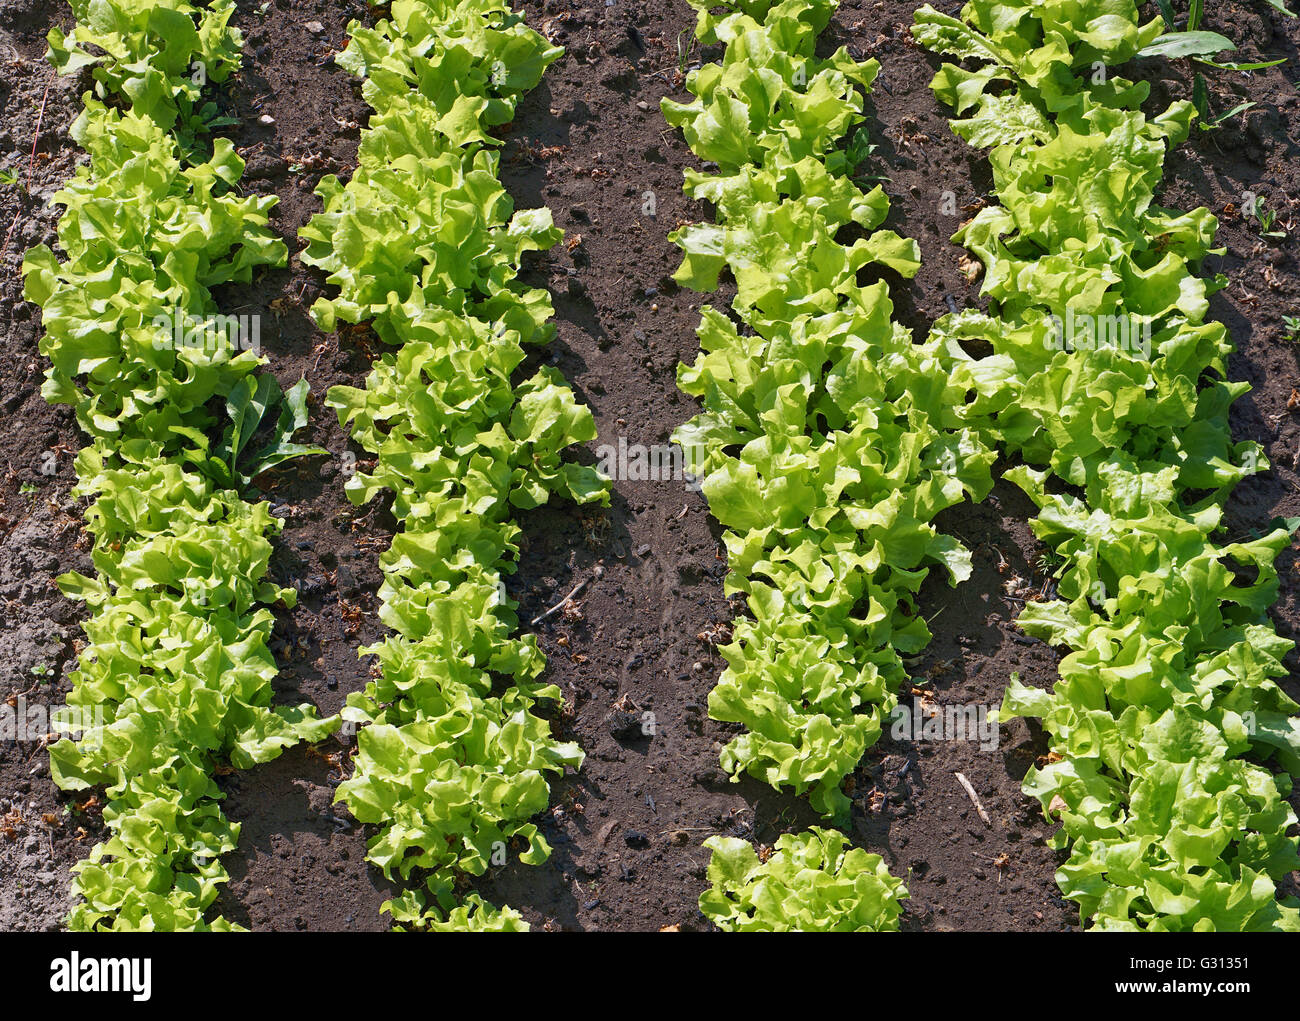 Bed With Fresh Sunny Green Salad Vegetables Top View After The Rain